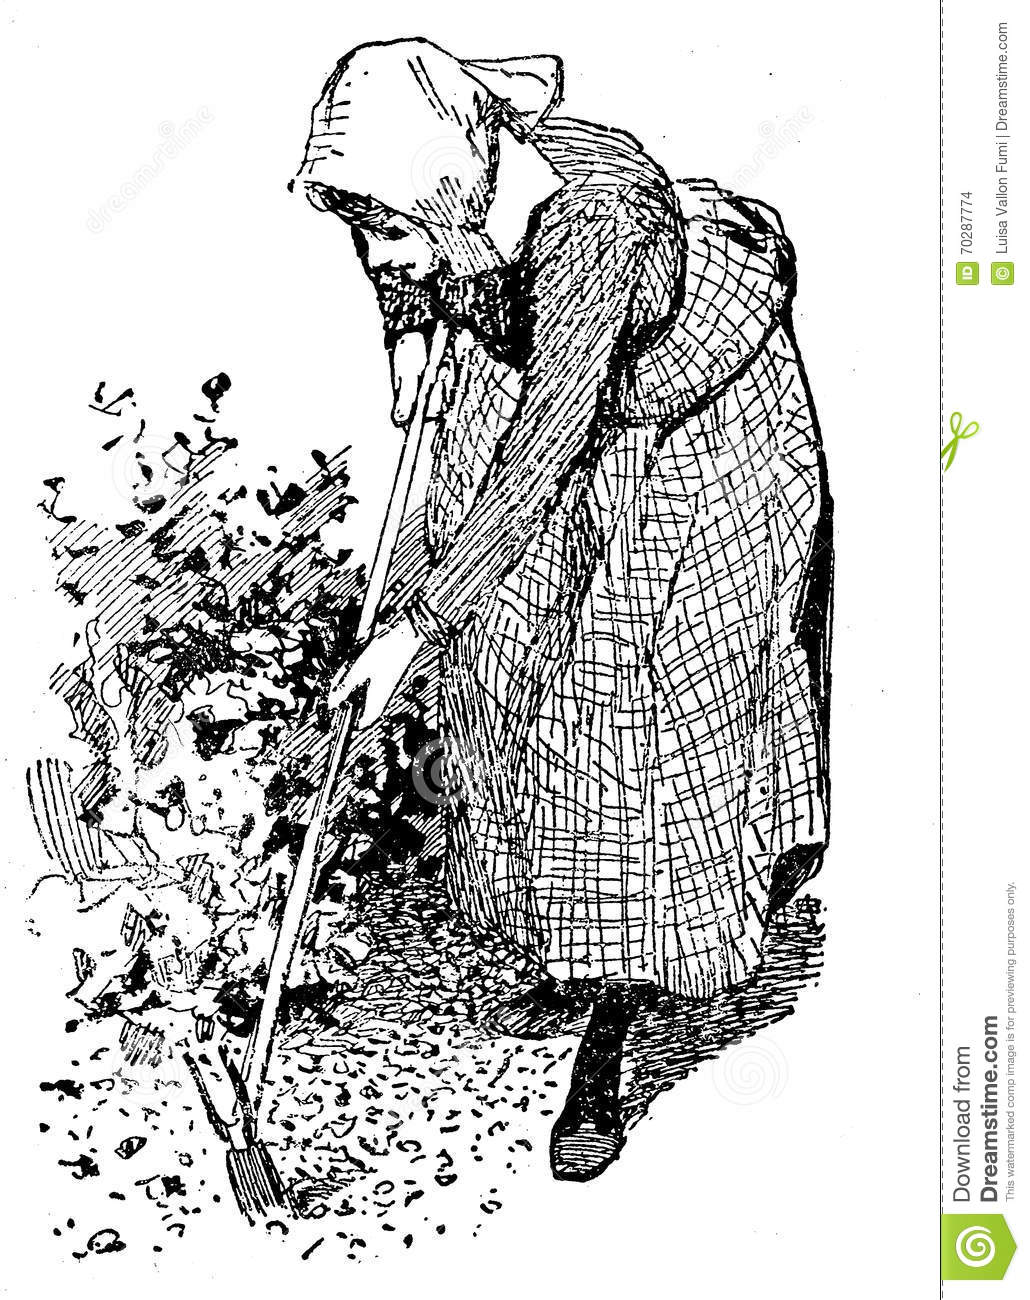 Horiculture vintage illustration woman working in the garden wi stock illustration - Gardening works in october winter preparations ...